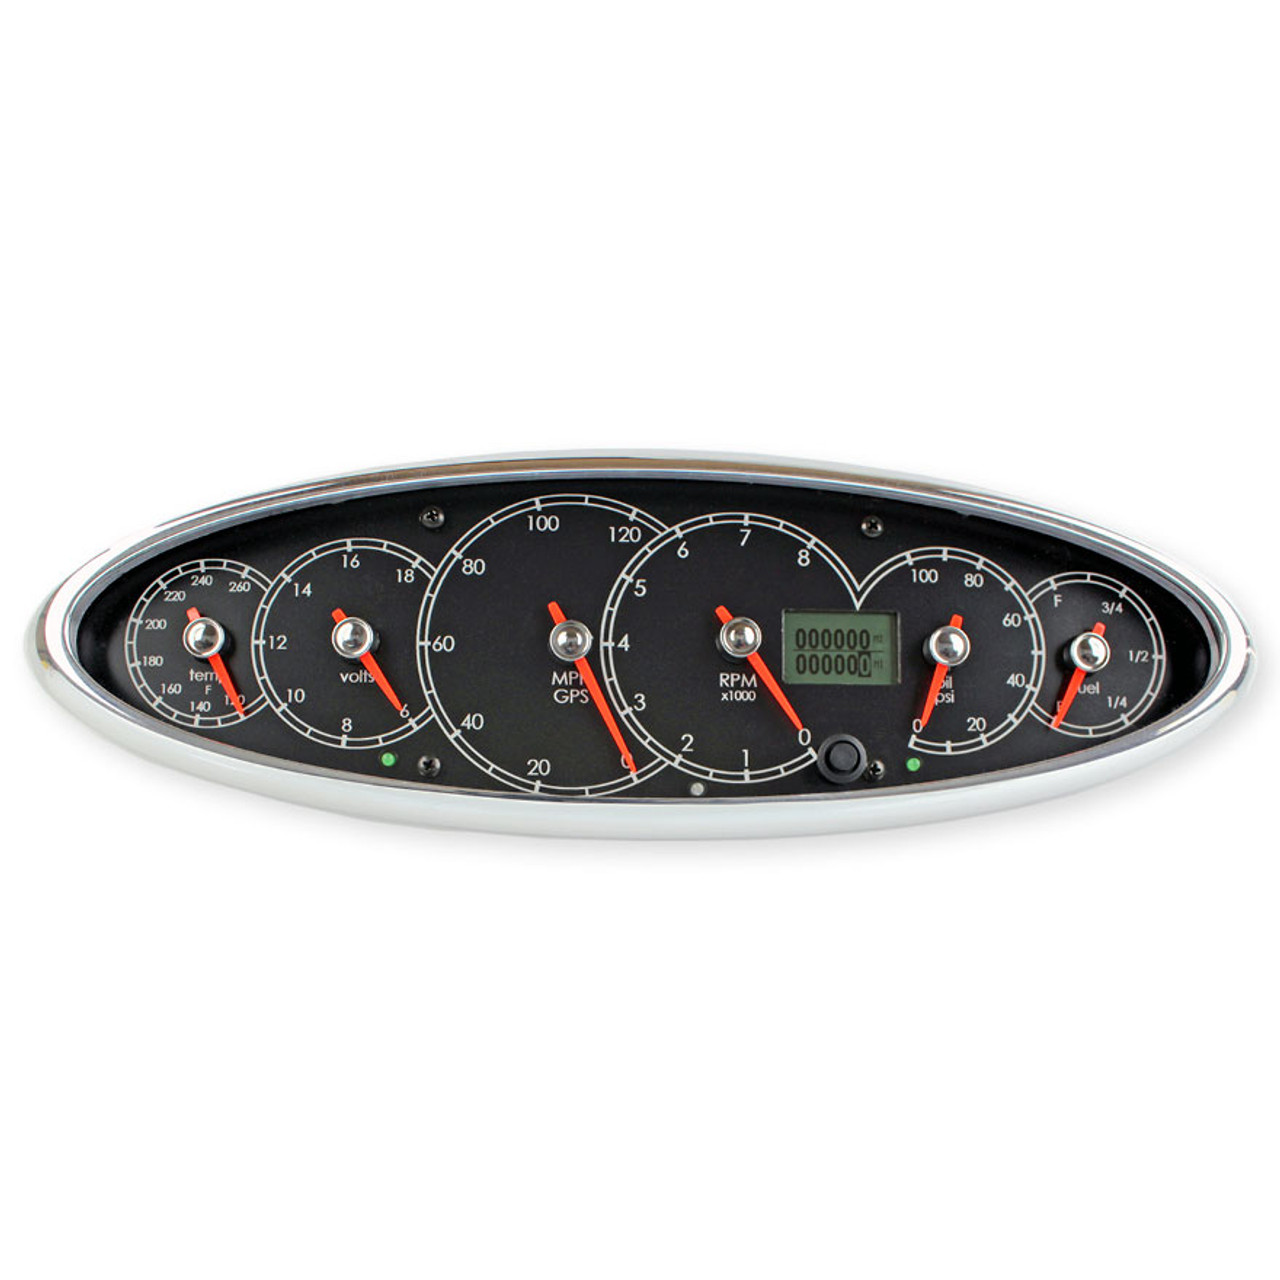 Legends - Icon - 6 in 1 Cluster (Black dial with White font, Chrome Blade Racer Red Pointer)